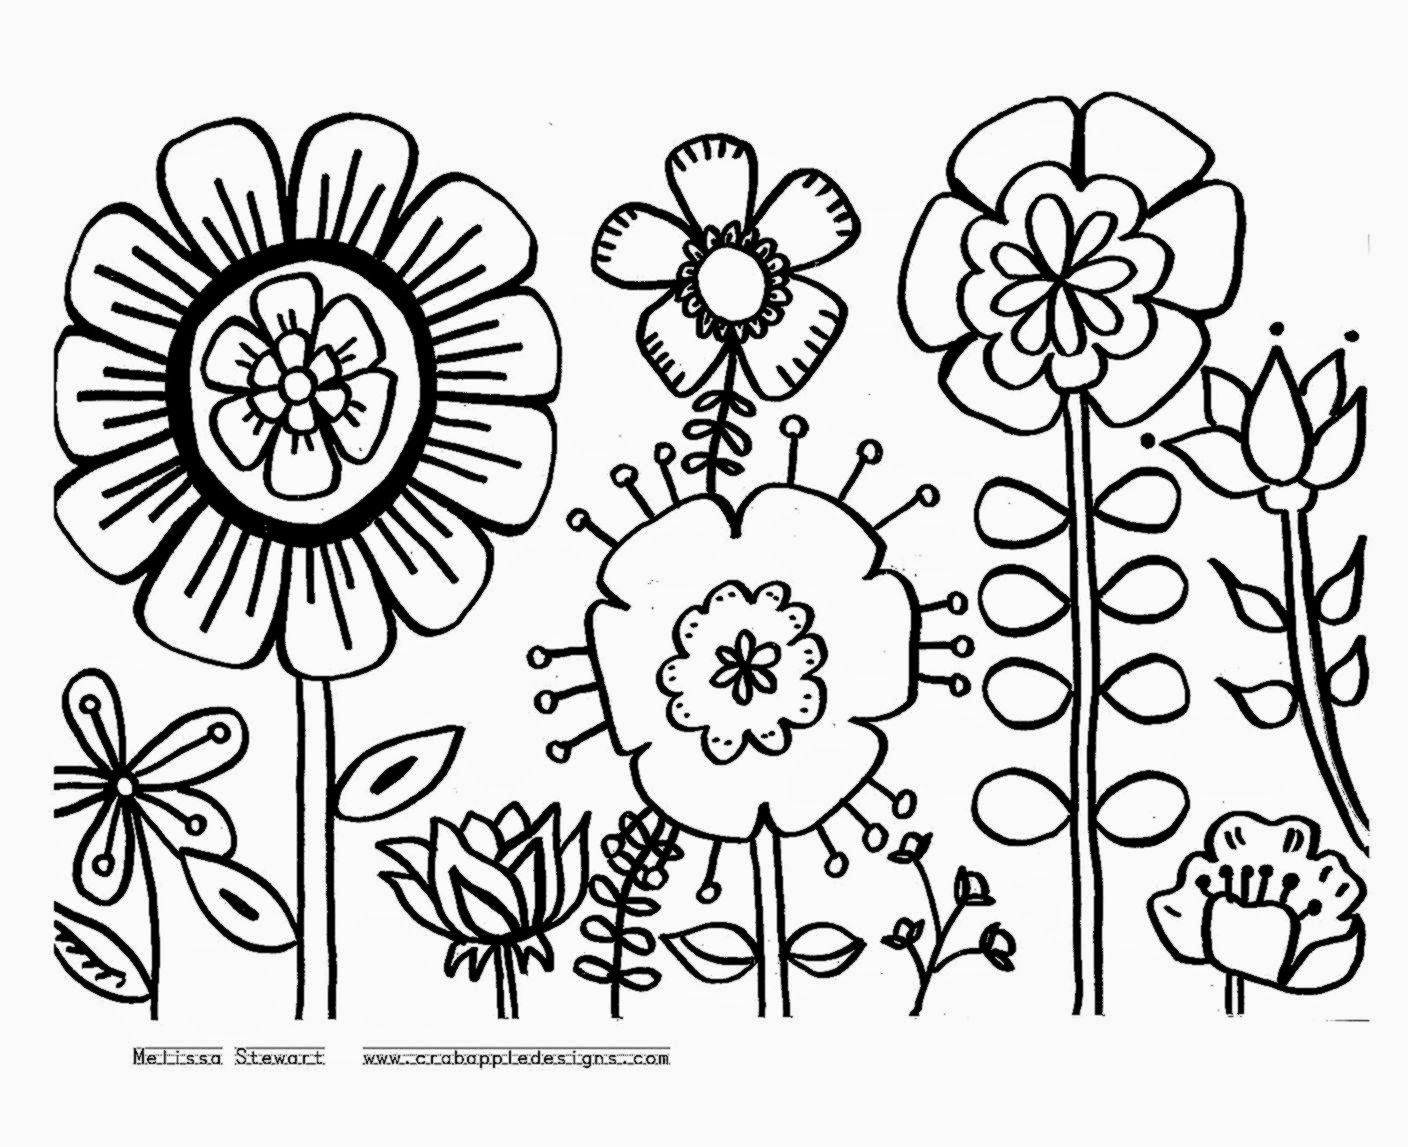 1408x1147 Unbelievable Flower Garden Coloring Pages To And Print For Pic